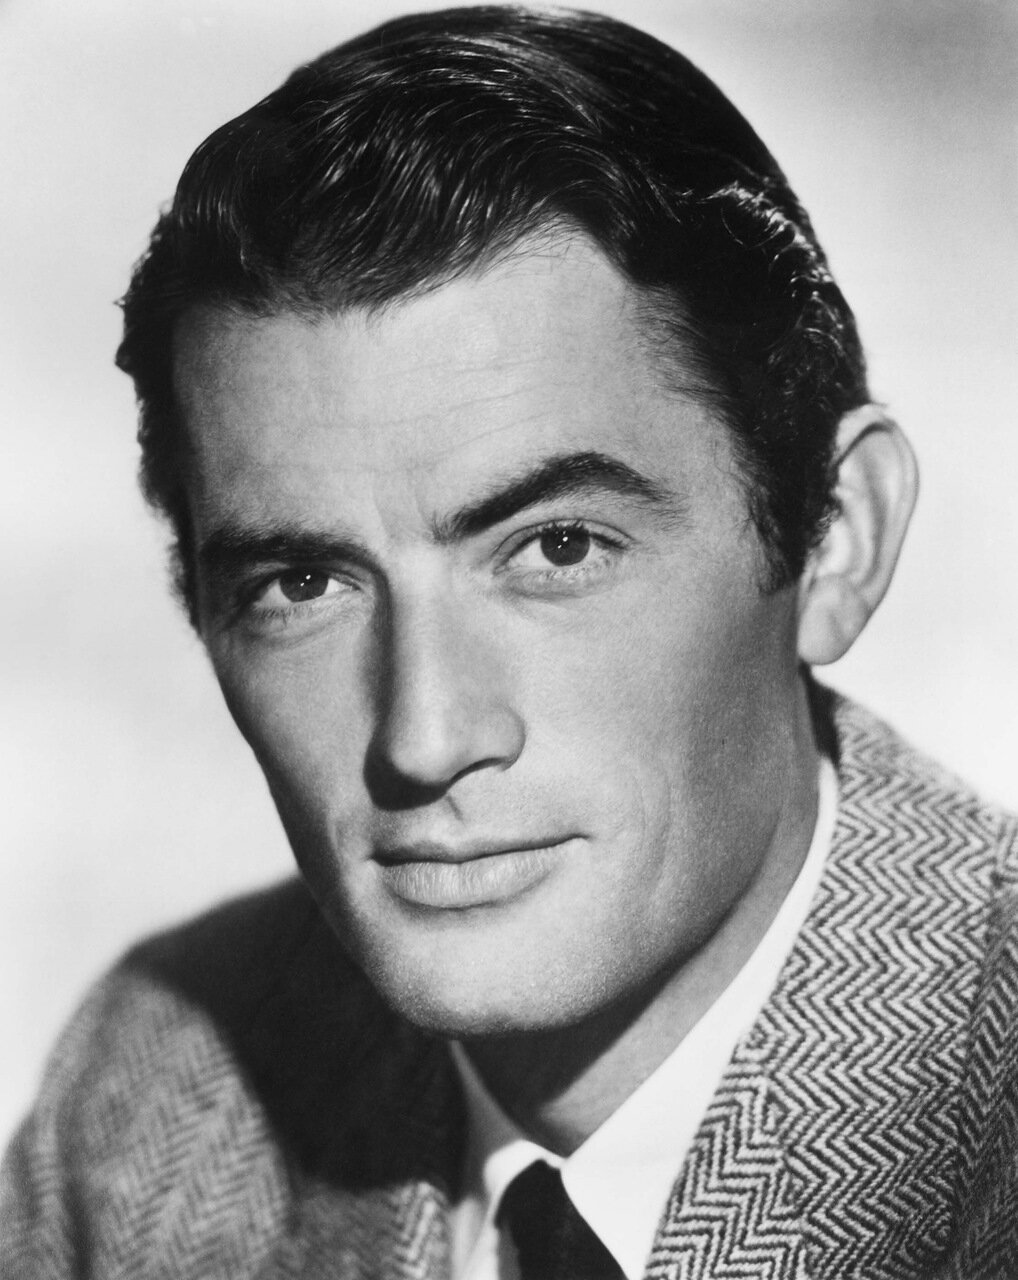 circa 1955:  American actor Gregory Peck (1916 - 2003).  (Photo by American Stock/Getty Images)